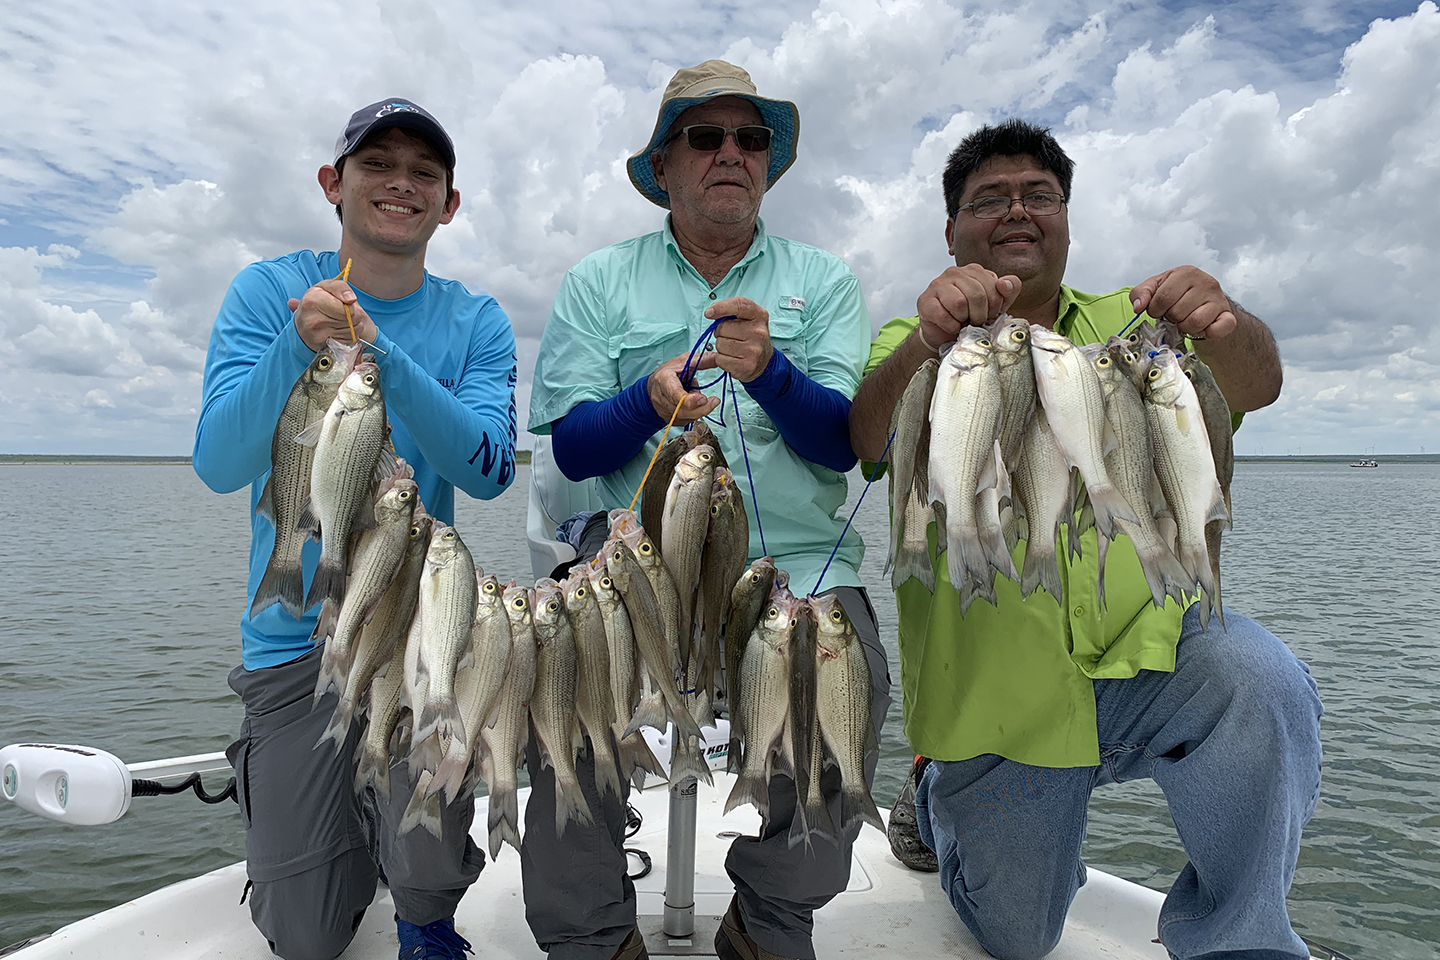 Three anglers holding stringers of White Bass on a boat in Oklahoma